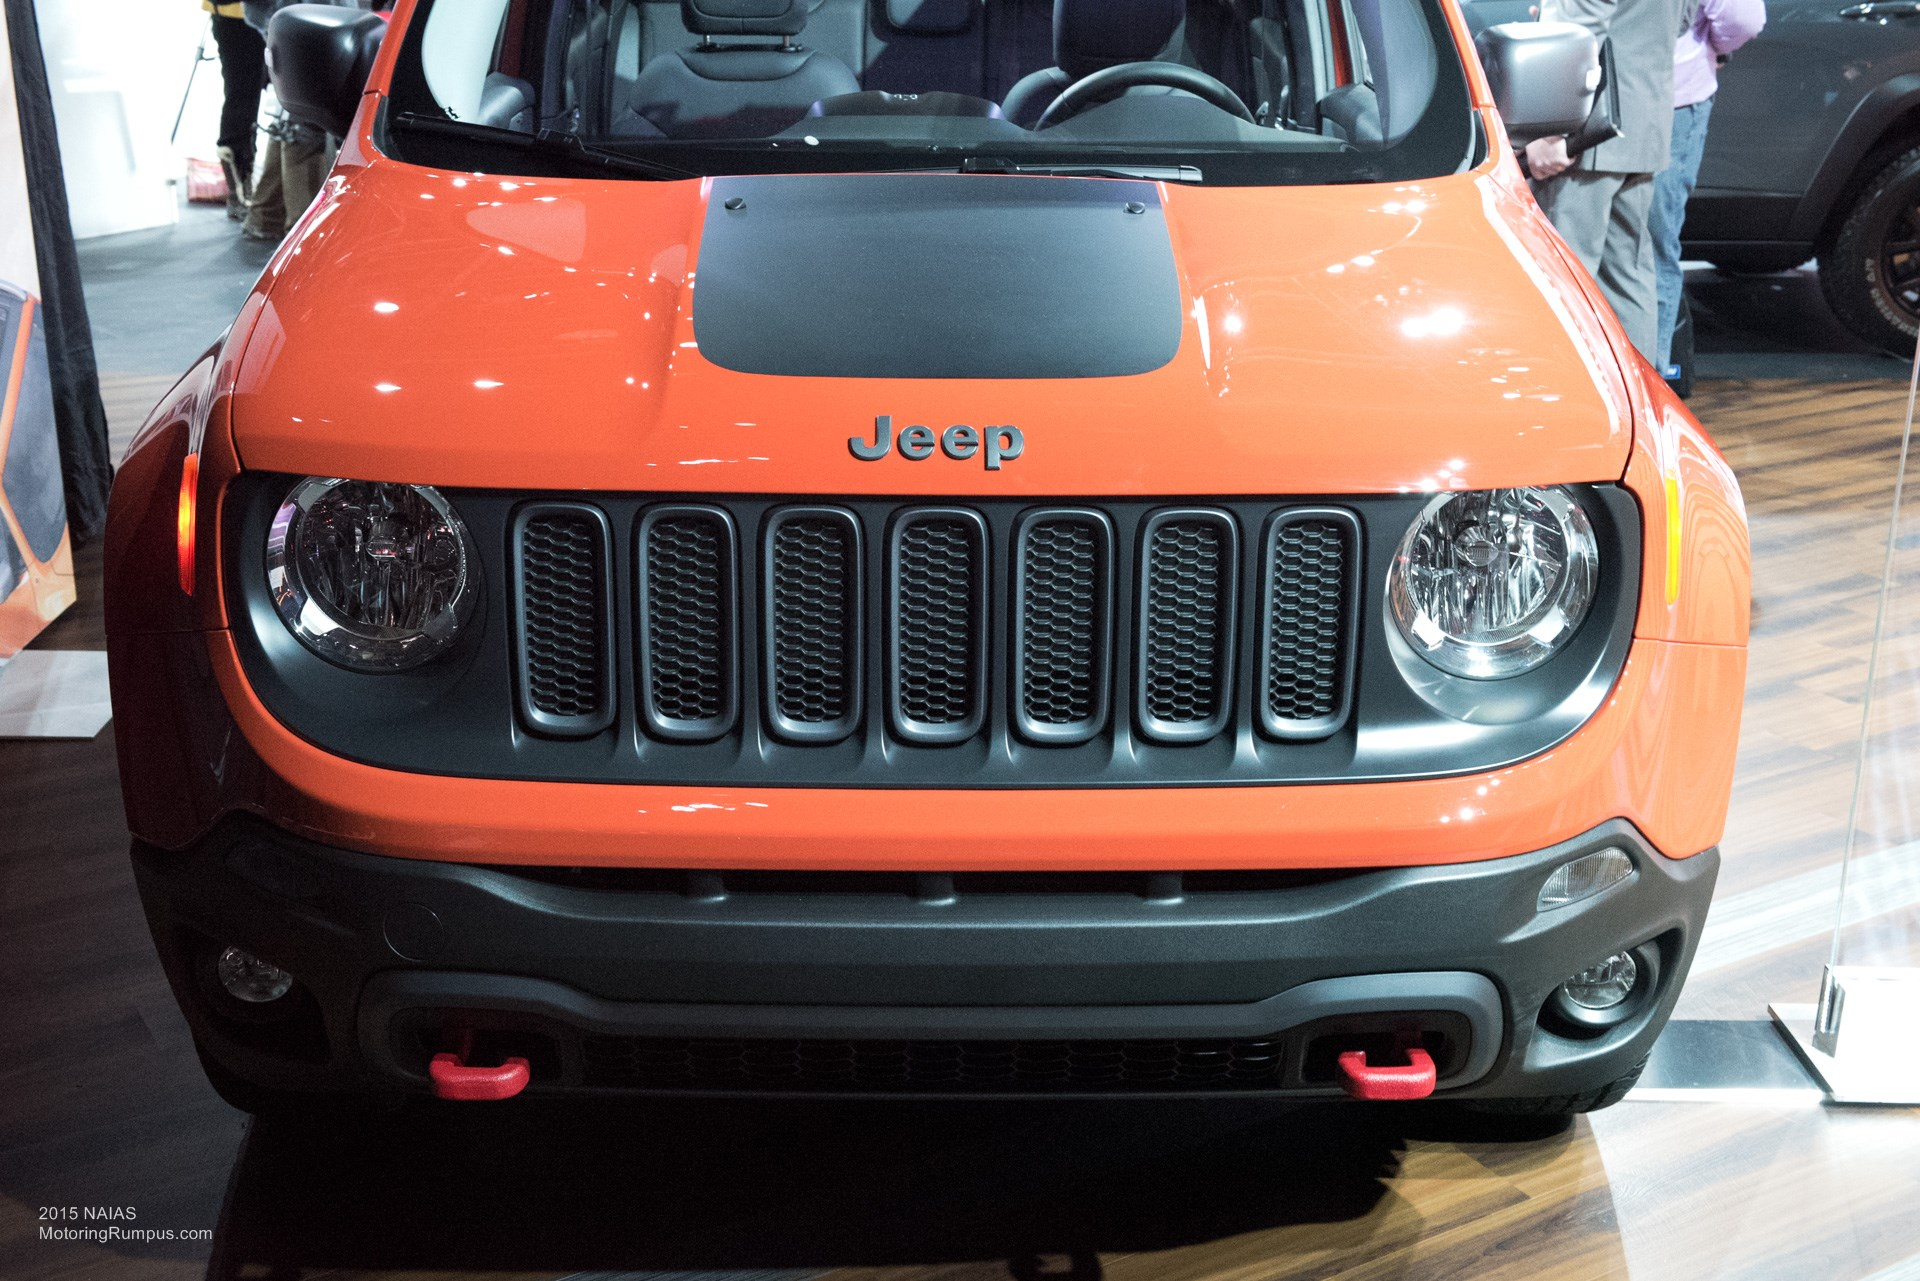 2015 NAIAS Jeep Renegade Trailhawk